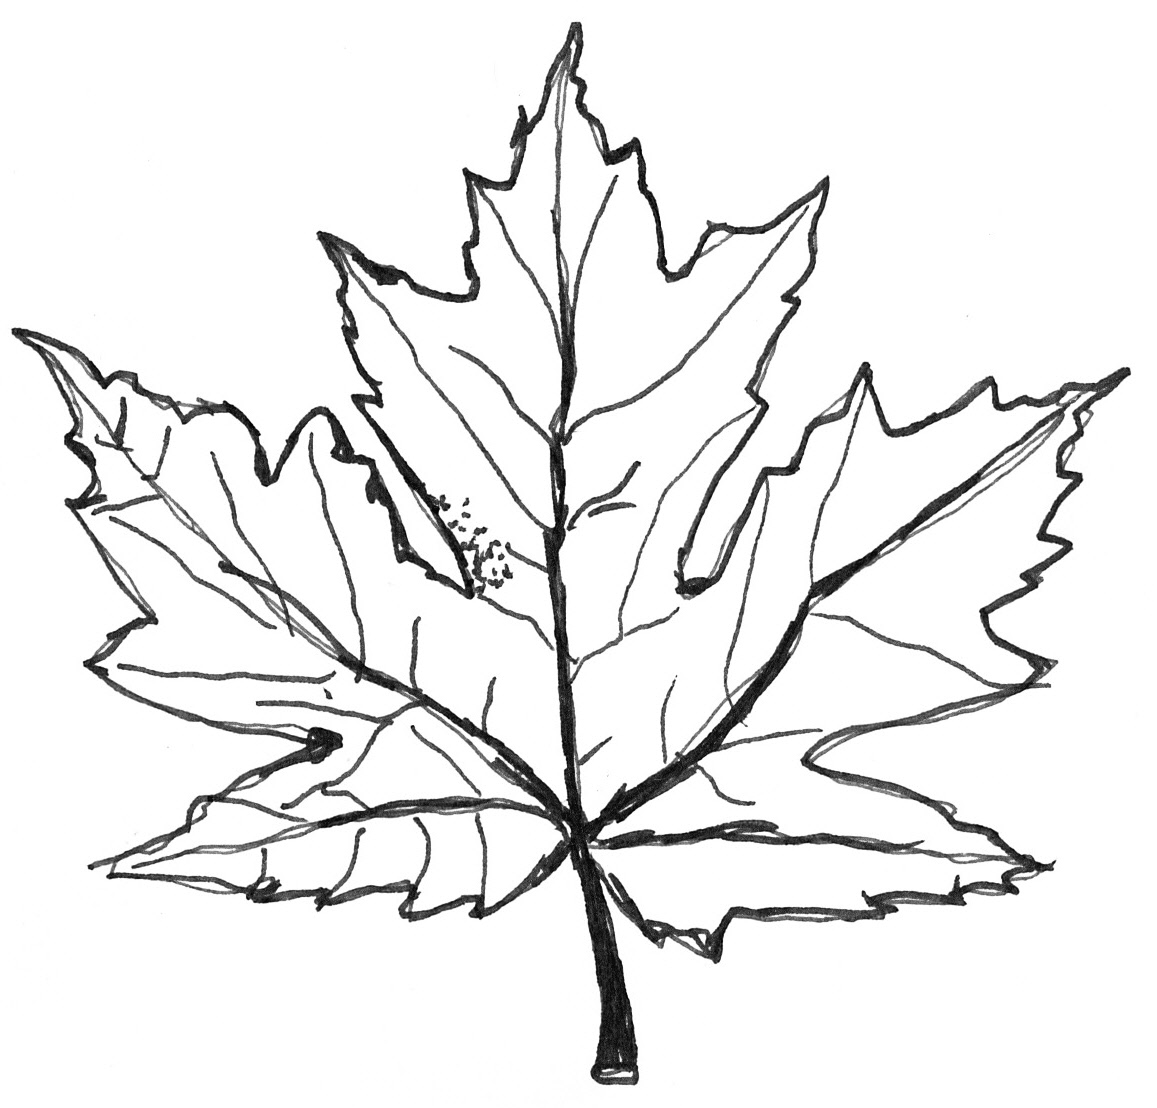 1157x1108 Innovative Maple Leaf Coloring Page Drawn Black And White Pencil